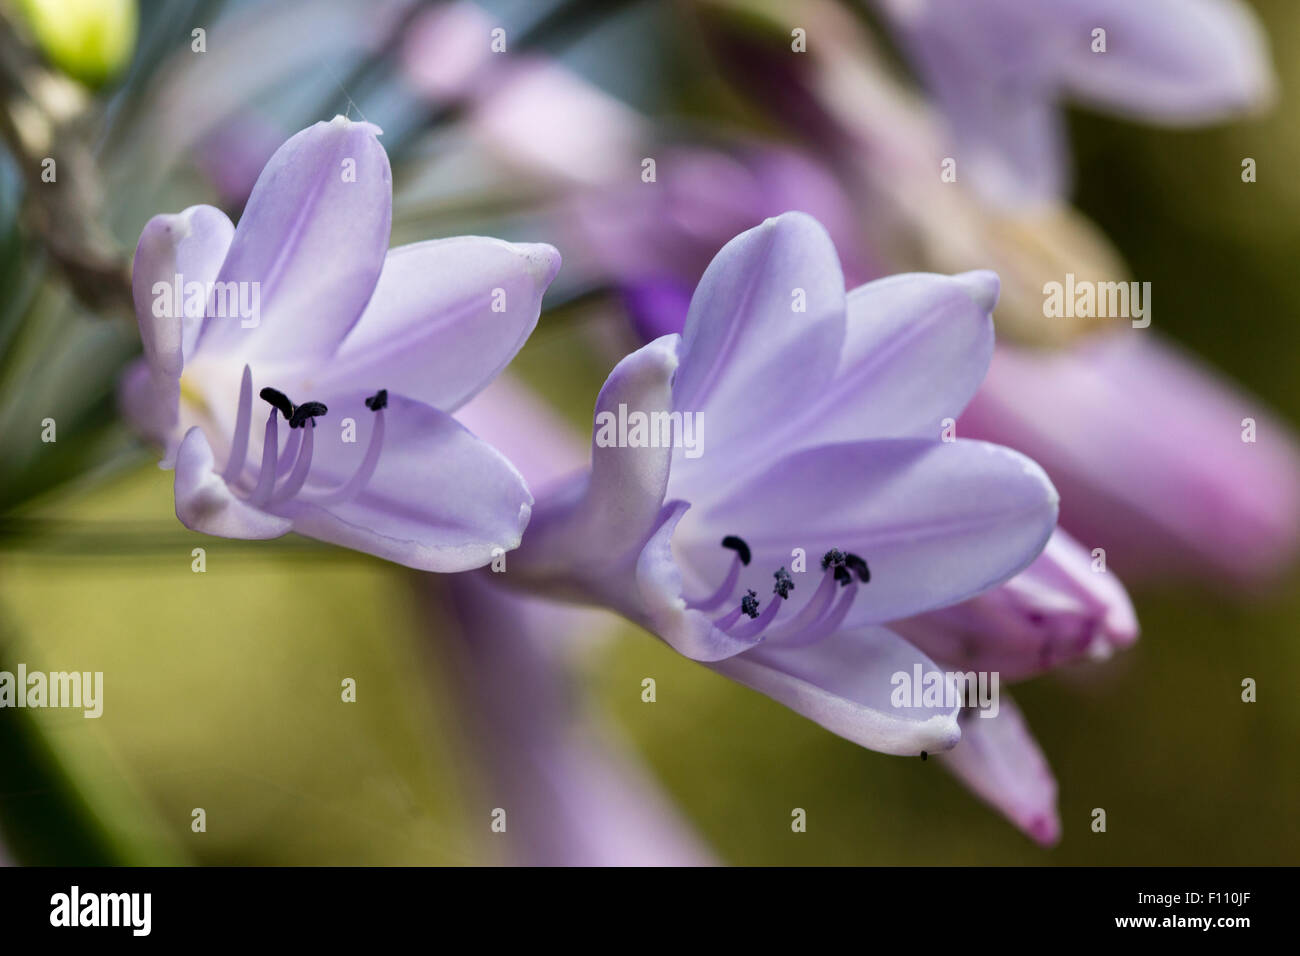 Two Flowers In The Head Of The Hardy Agapanthus Liam S Lilac